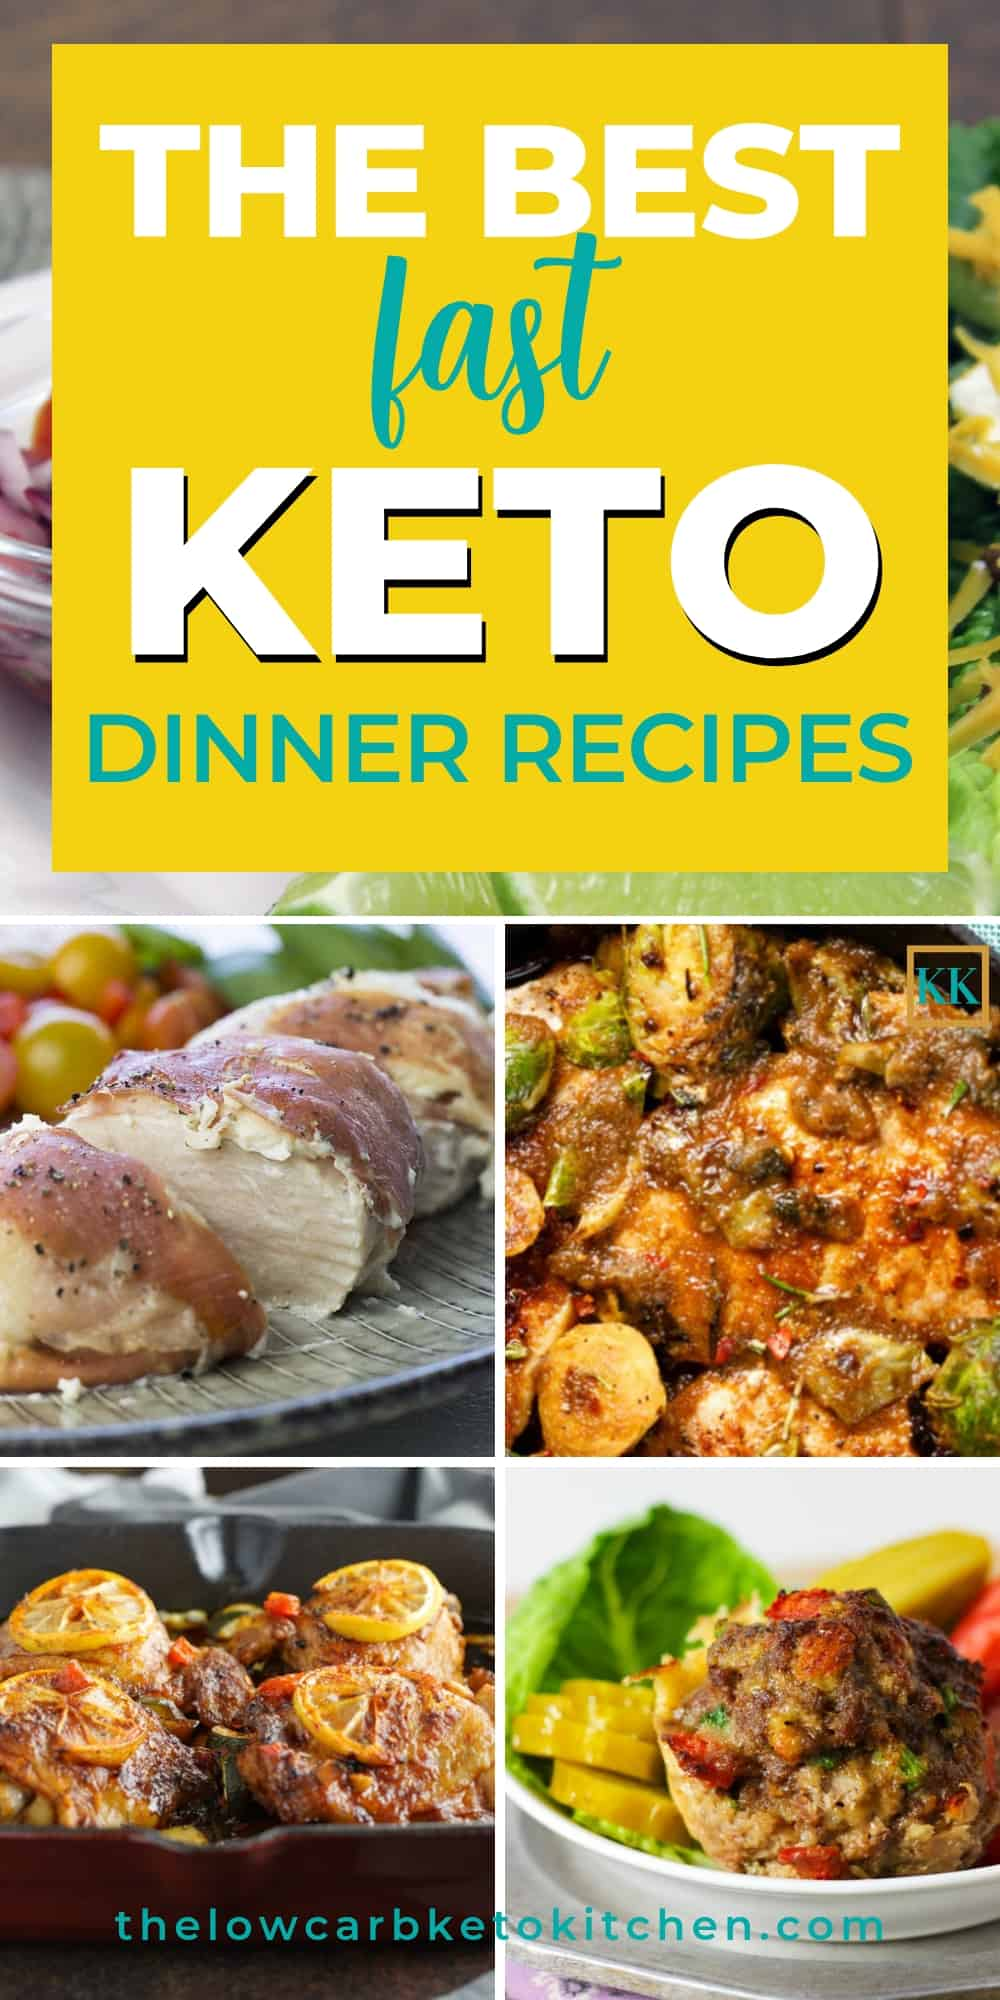 Fast Keto Dinner Recipes